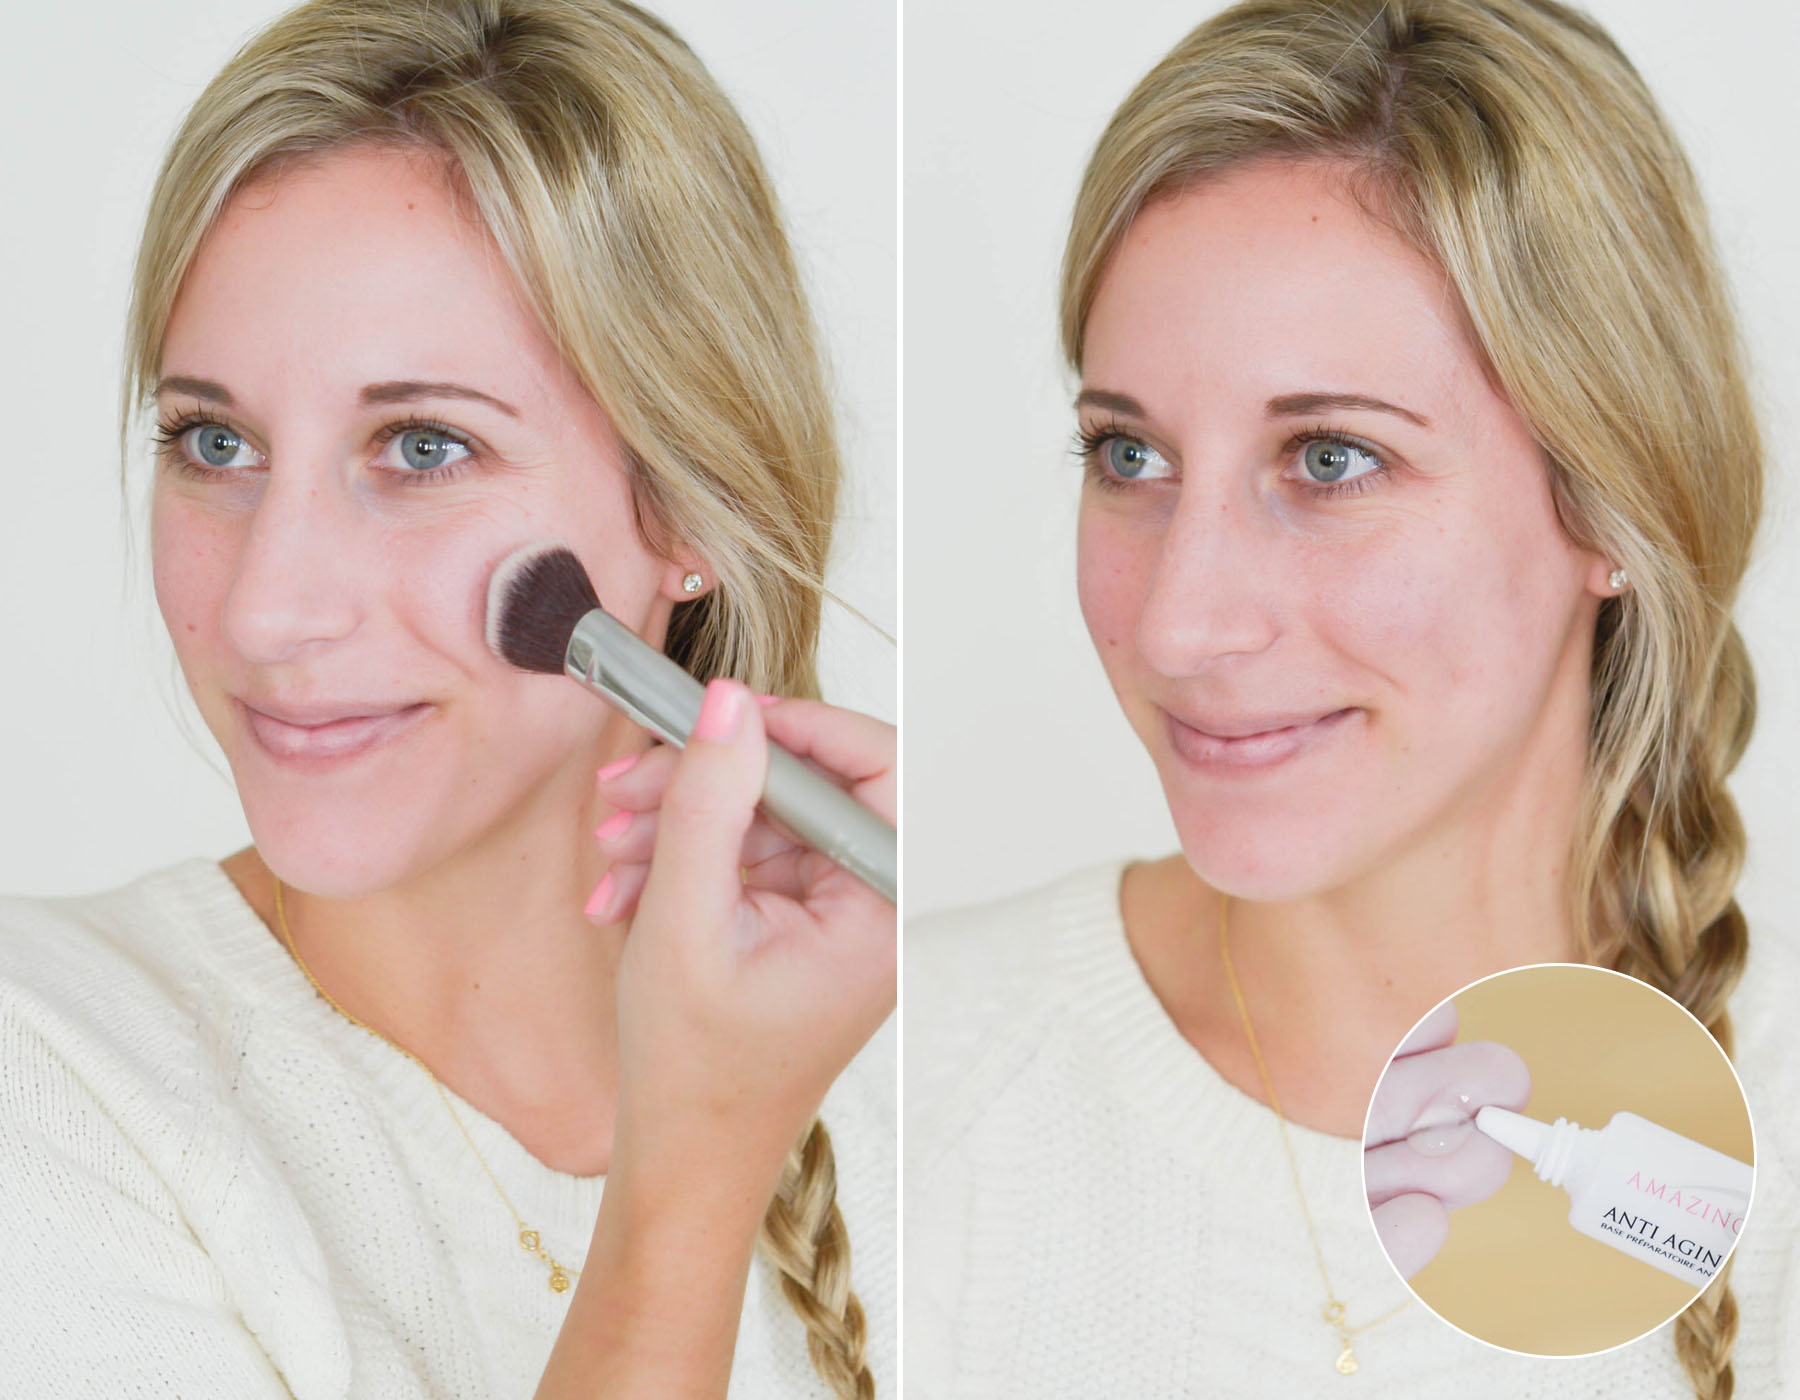 How to make wrinkles with makeup